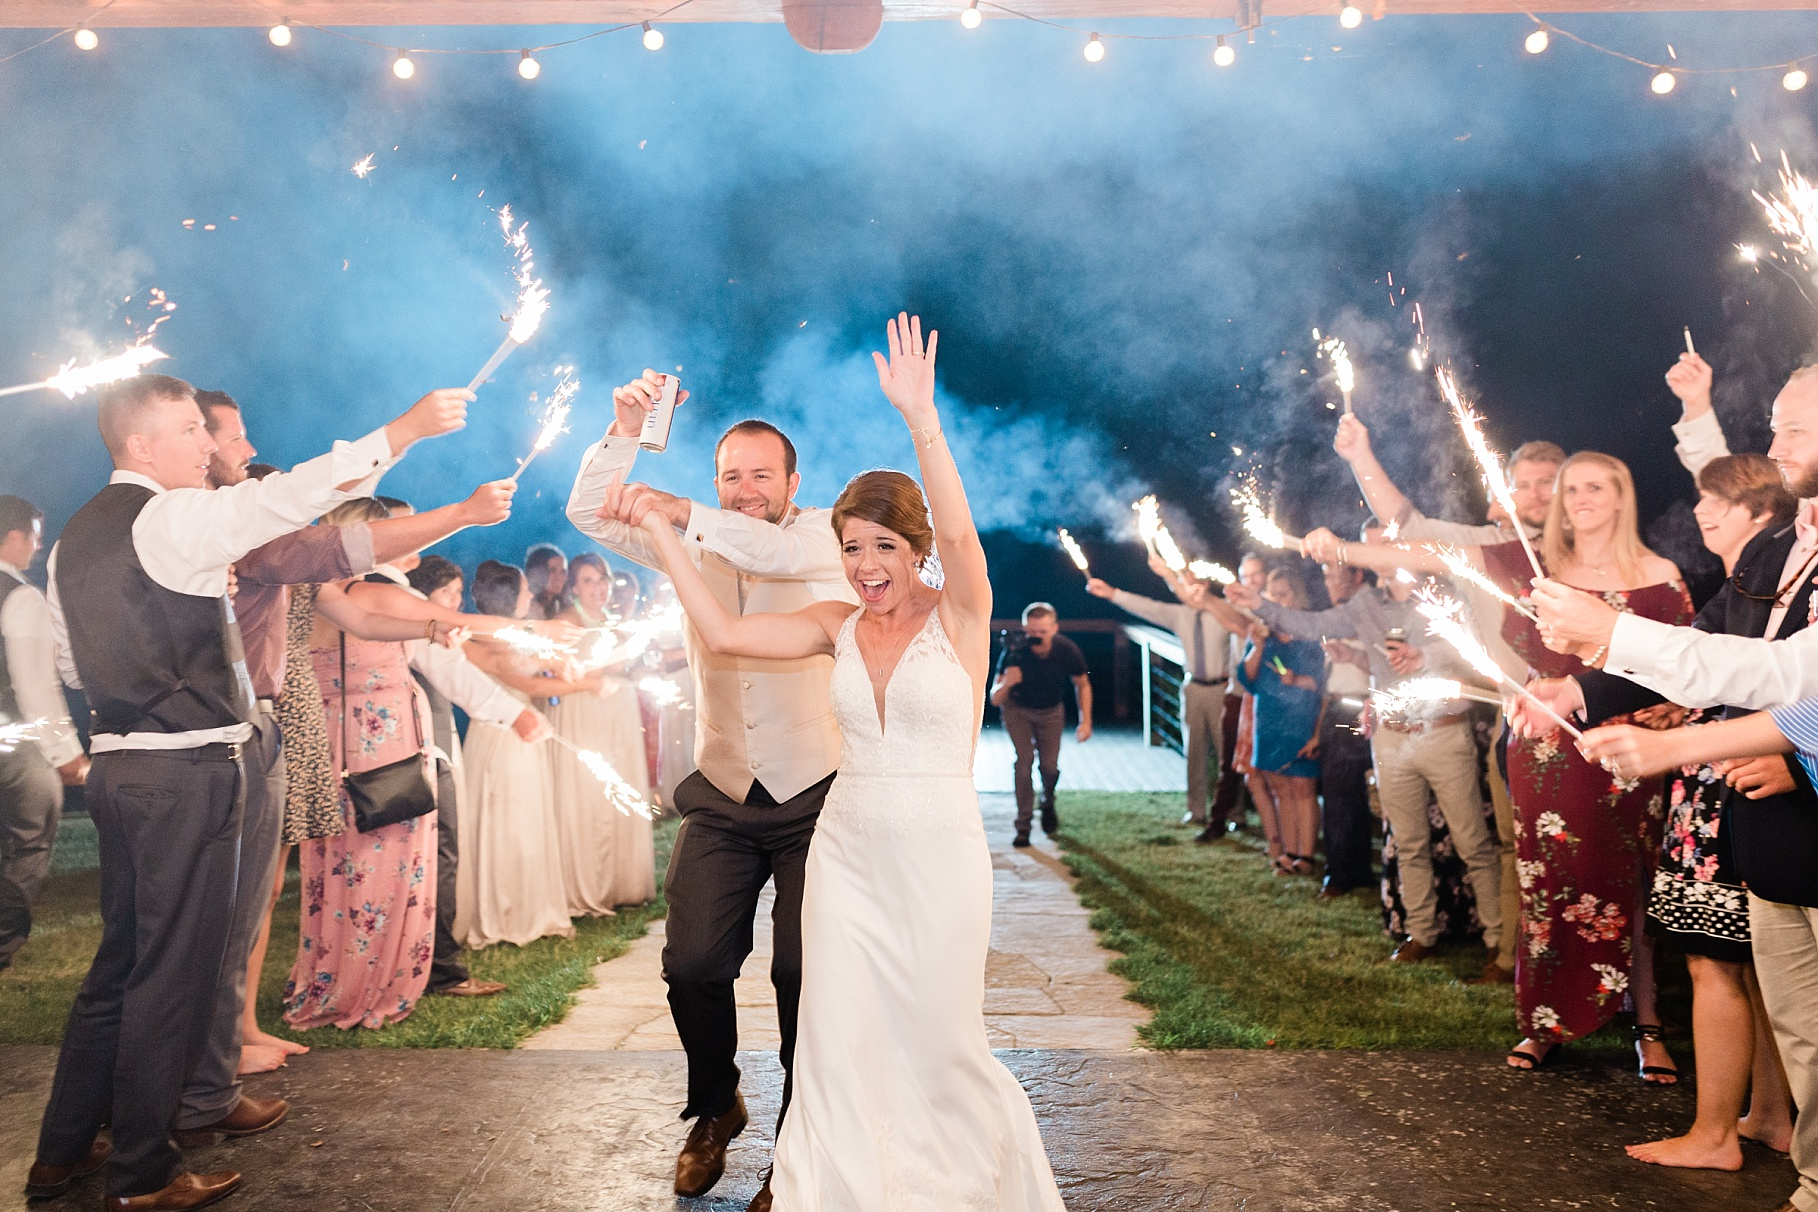 Wedding Ceremony with Confetti Pop at Emerson Fields Venue by Associate Wedding Photographer for Kelsi Kliethermes Photography Best Columbia Missouri and Maui Hawaii Wedding Photographer_0025.jpg